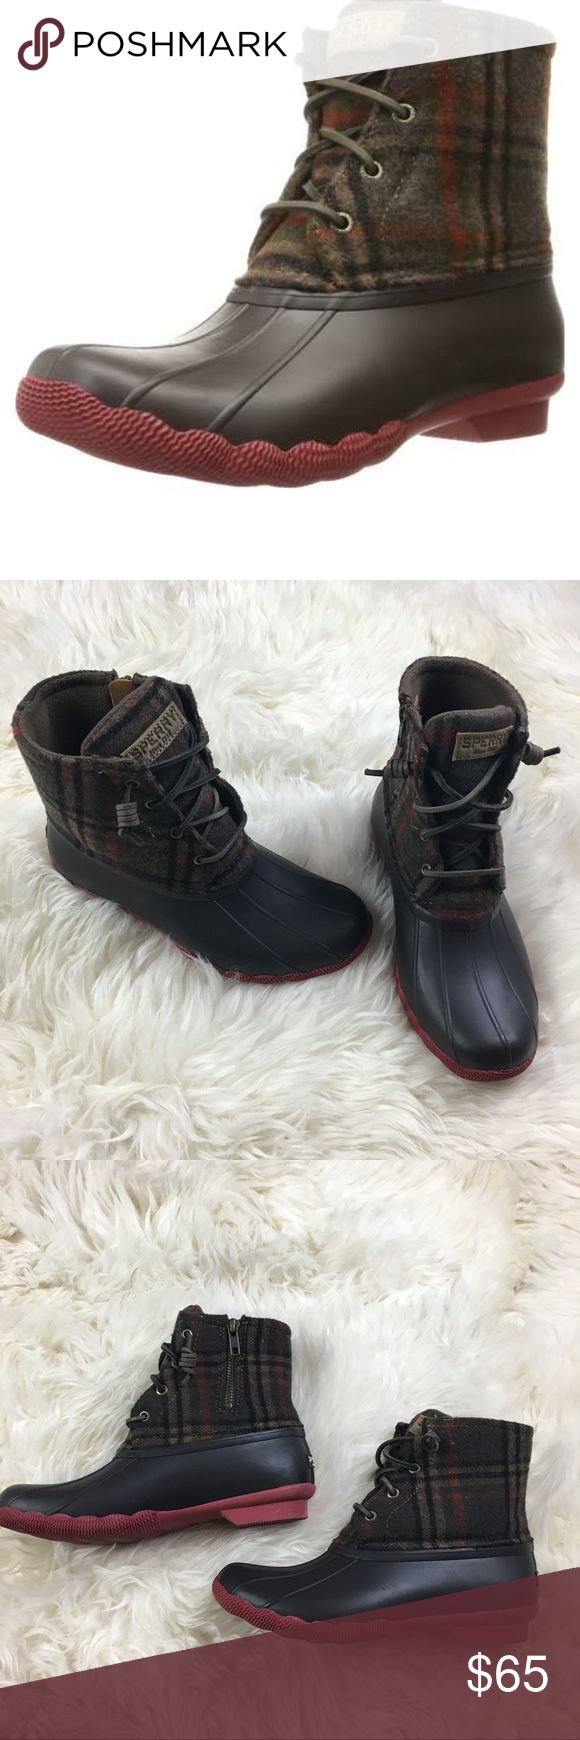 Sperry Saltwater Brown/Plaid Wool Duck Booties Sperry  Women's Saltwater duck booties  Brown/Plaid Wool Size 6.5 M New without box  Retail $119 Side zip closure  Boot height 6.5 inches  0.5 inch heel  10 Inches in-sole length Sperry Shoes Winter & Rain Boots